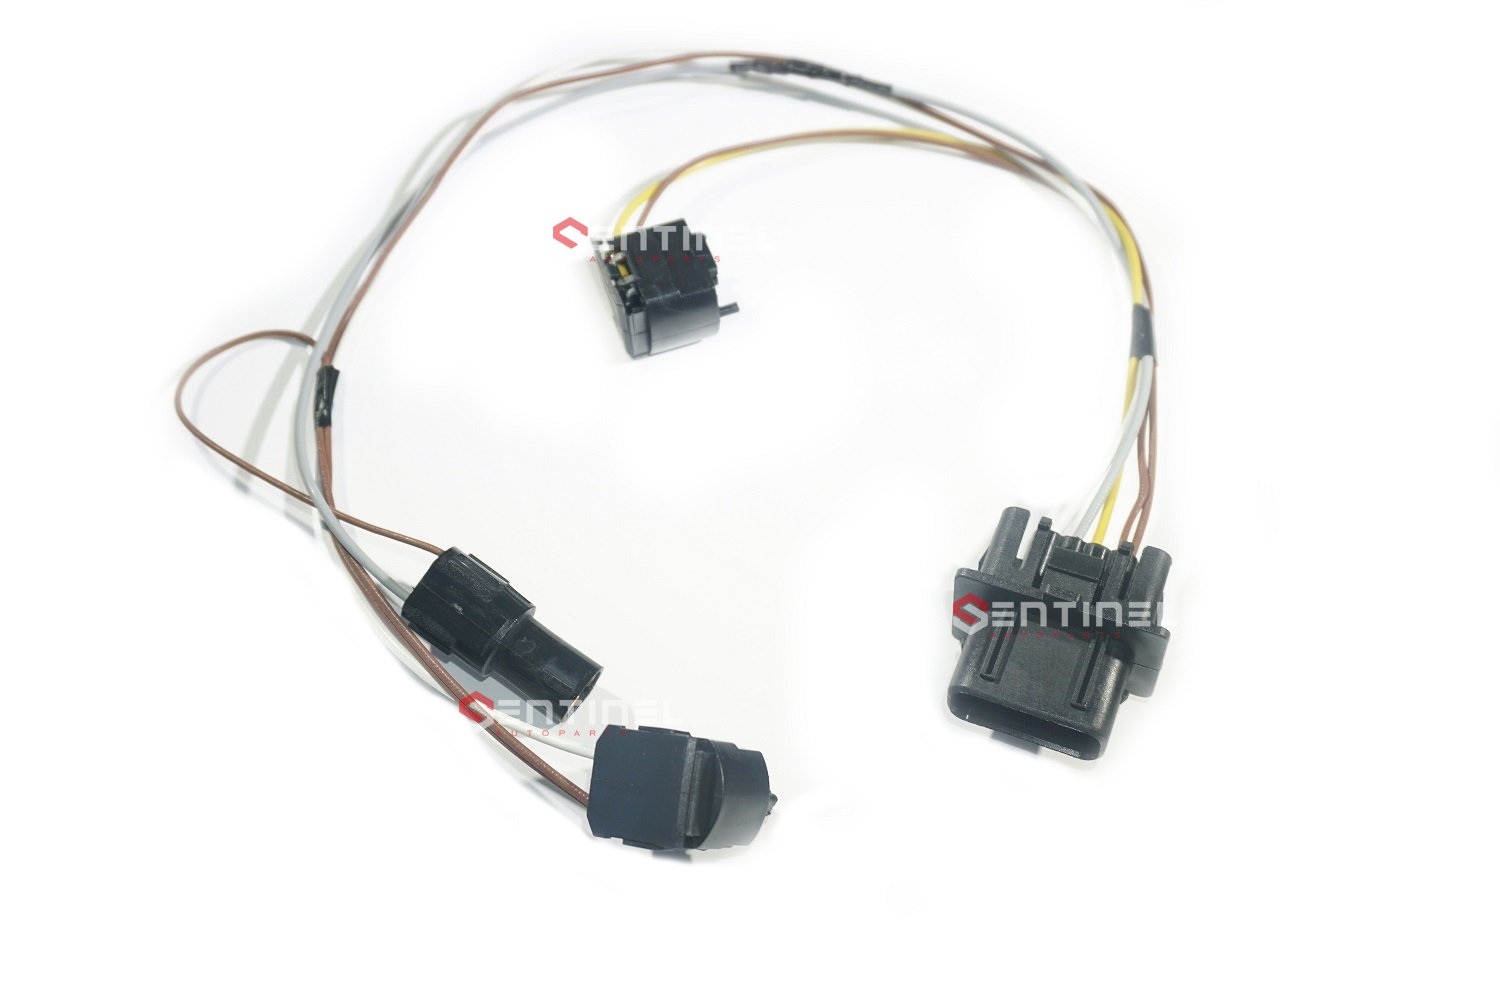 61UxevPG0vL._SL1500_ amazon com sentinel parts b360 99 03 mercedes w210 headlight wire OEM Wiring Harness Connectors at fashall.co